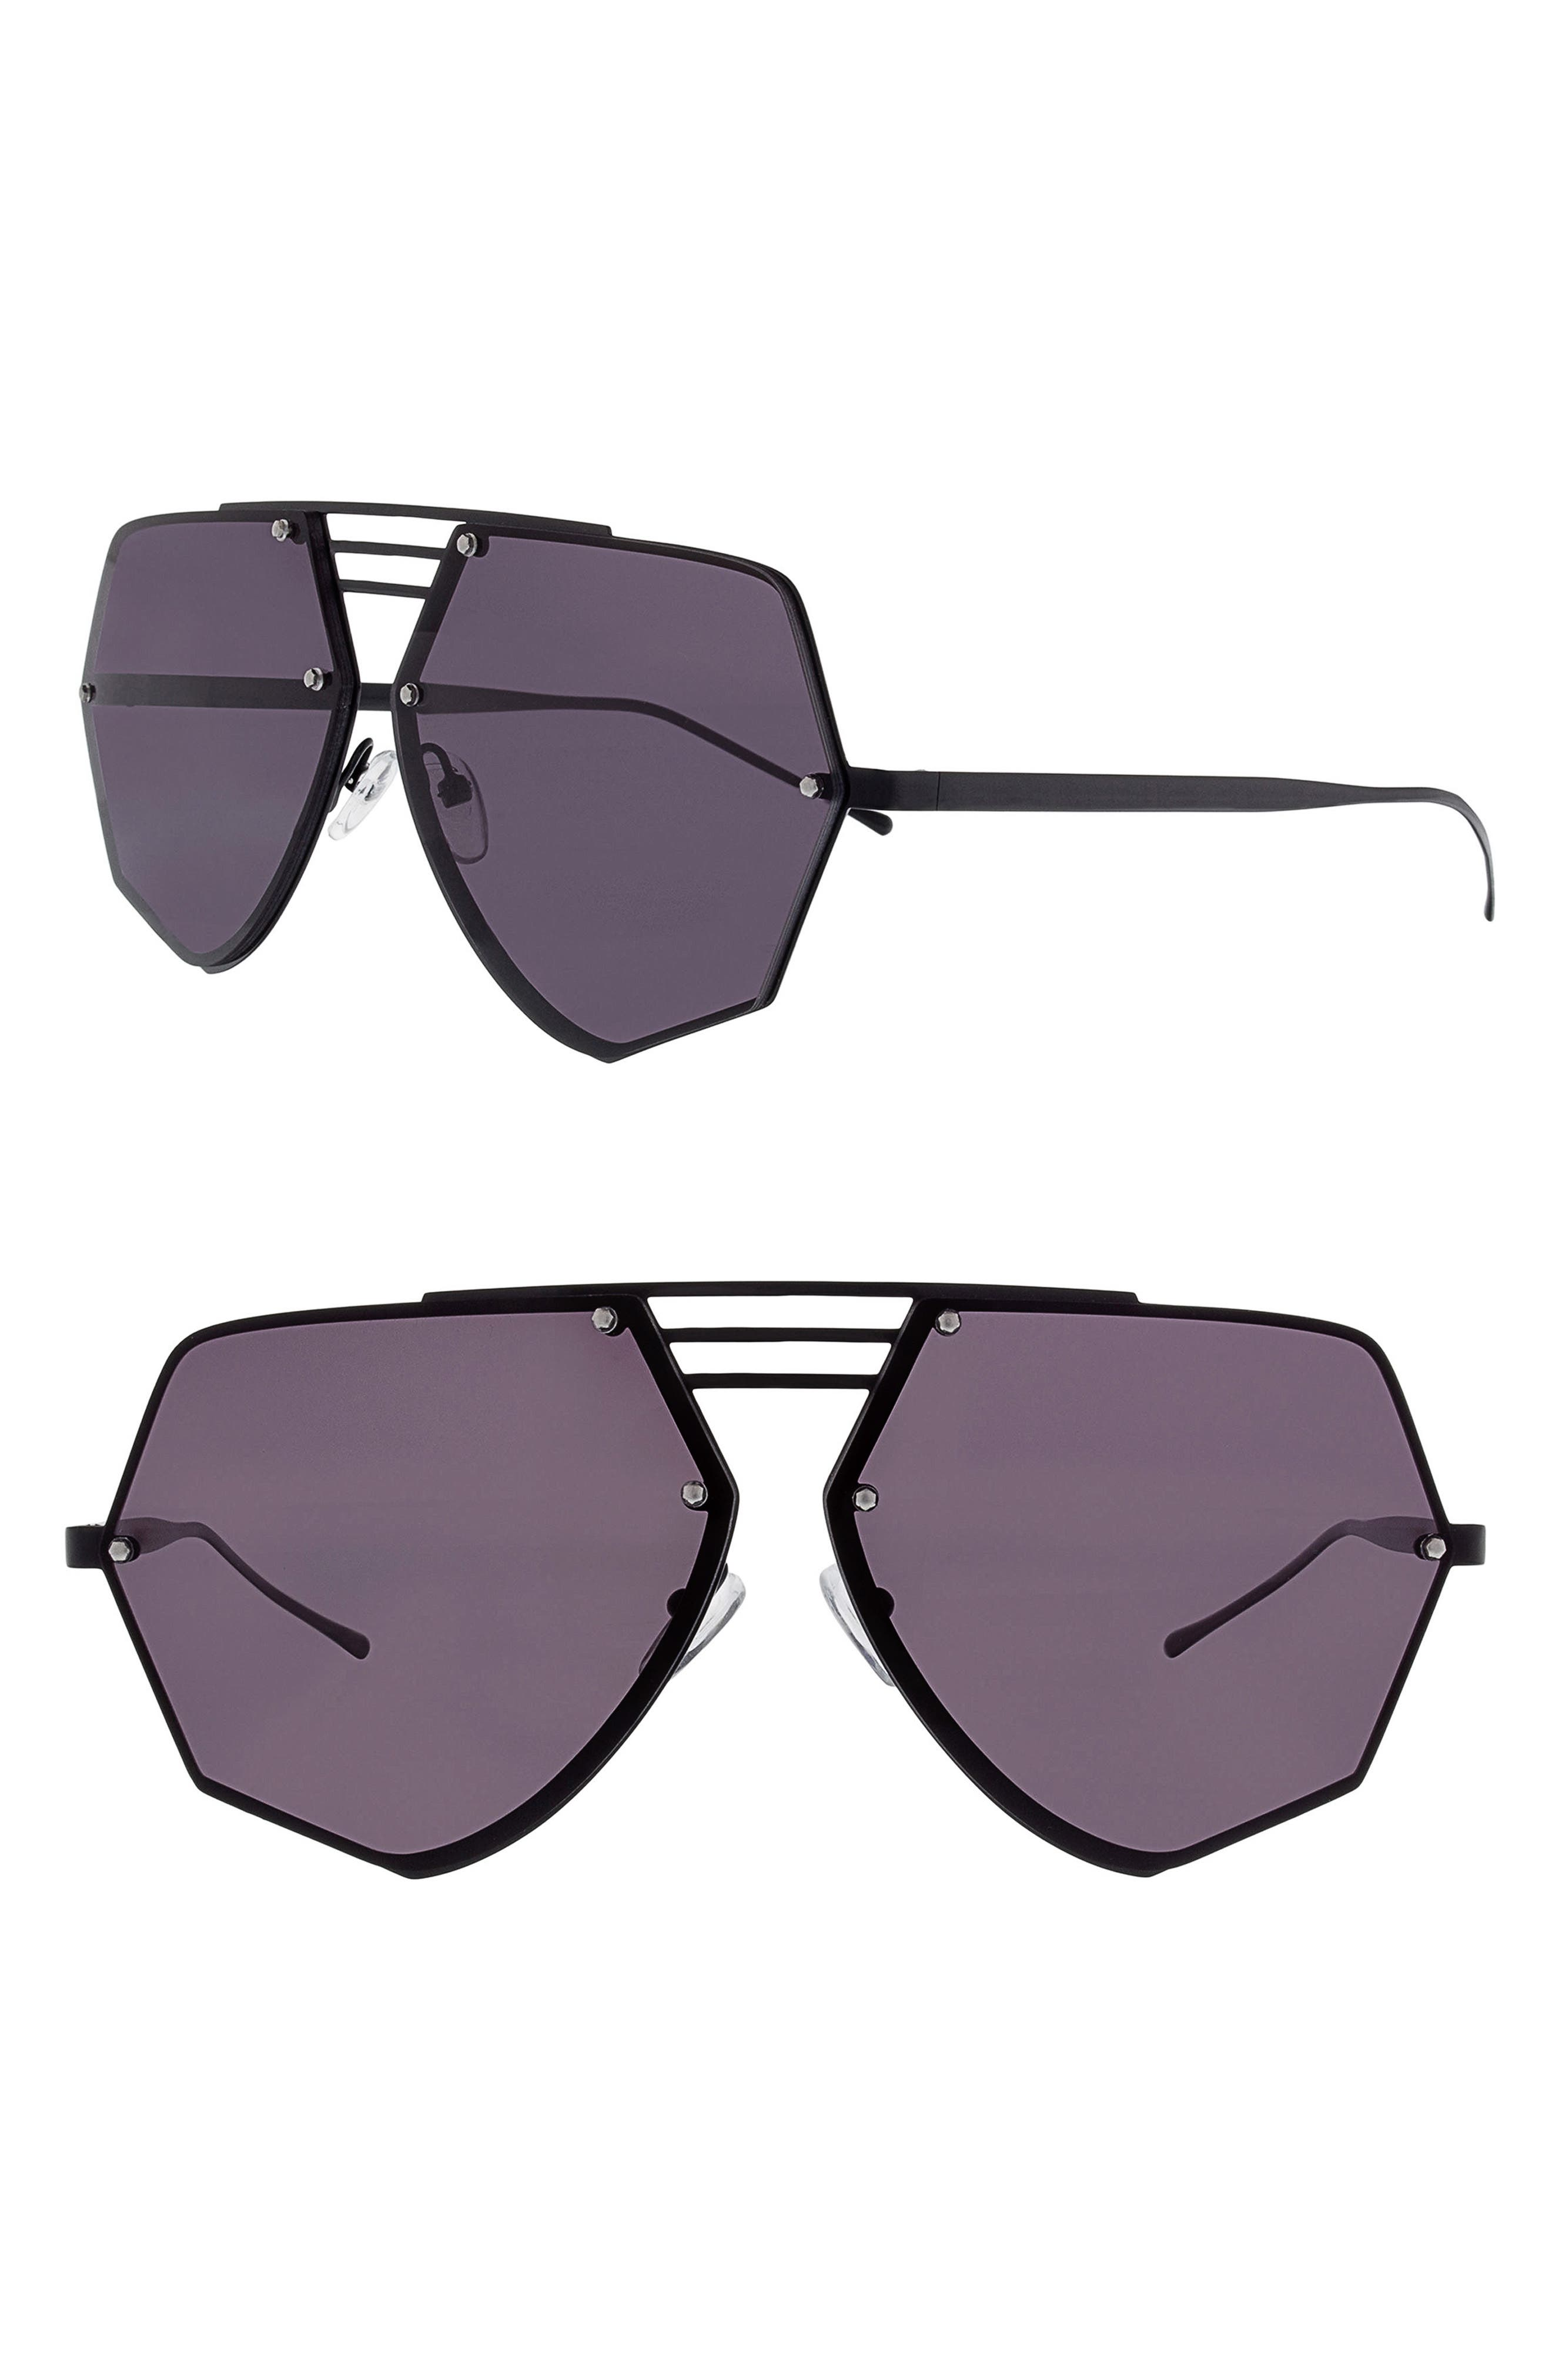 Geo 8 60mm Sunglasses,                             Main thumbnail 1, color,                             040